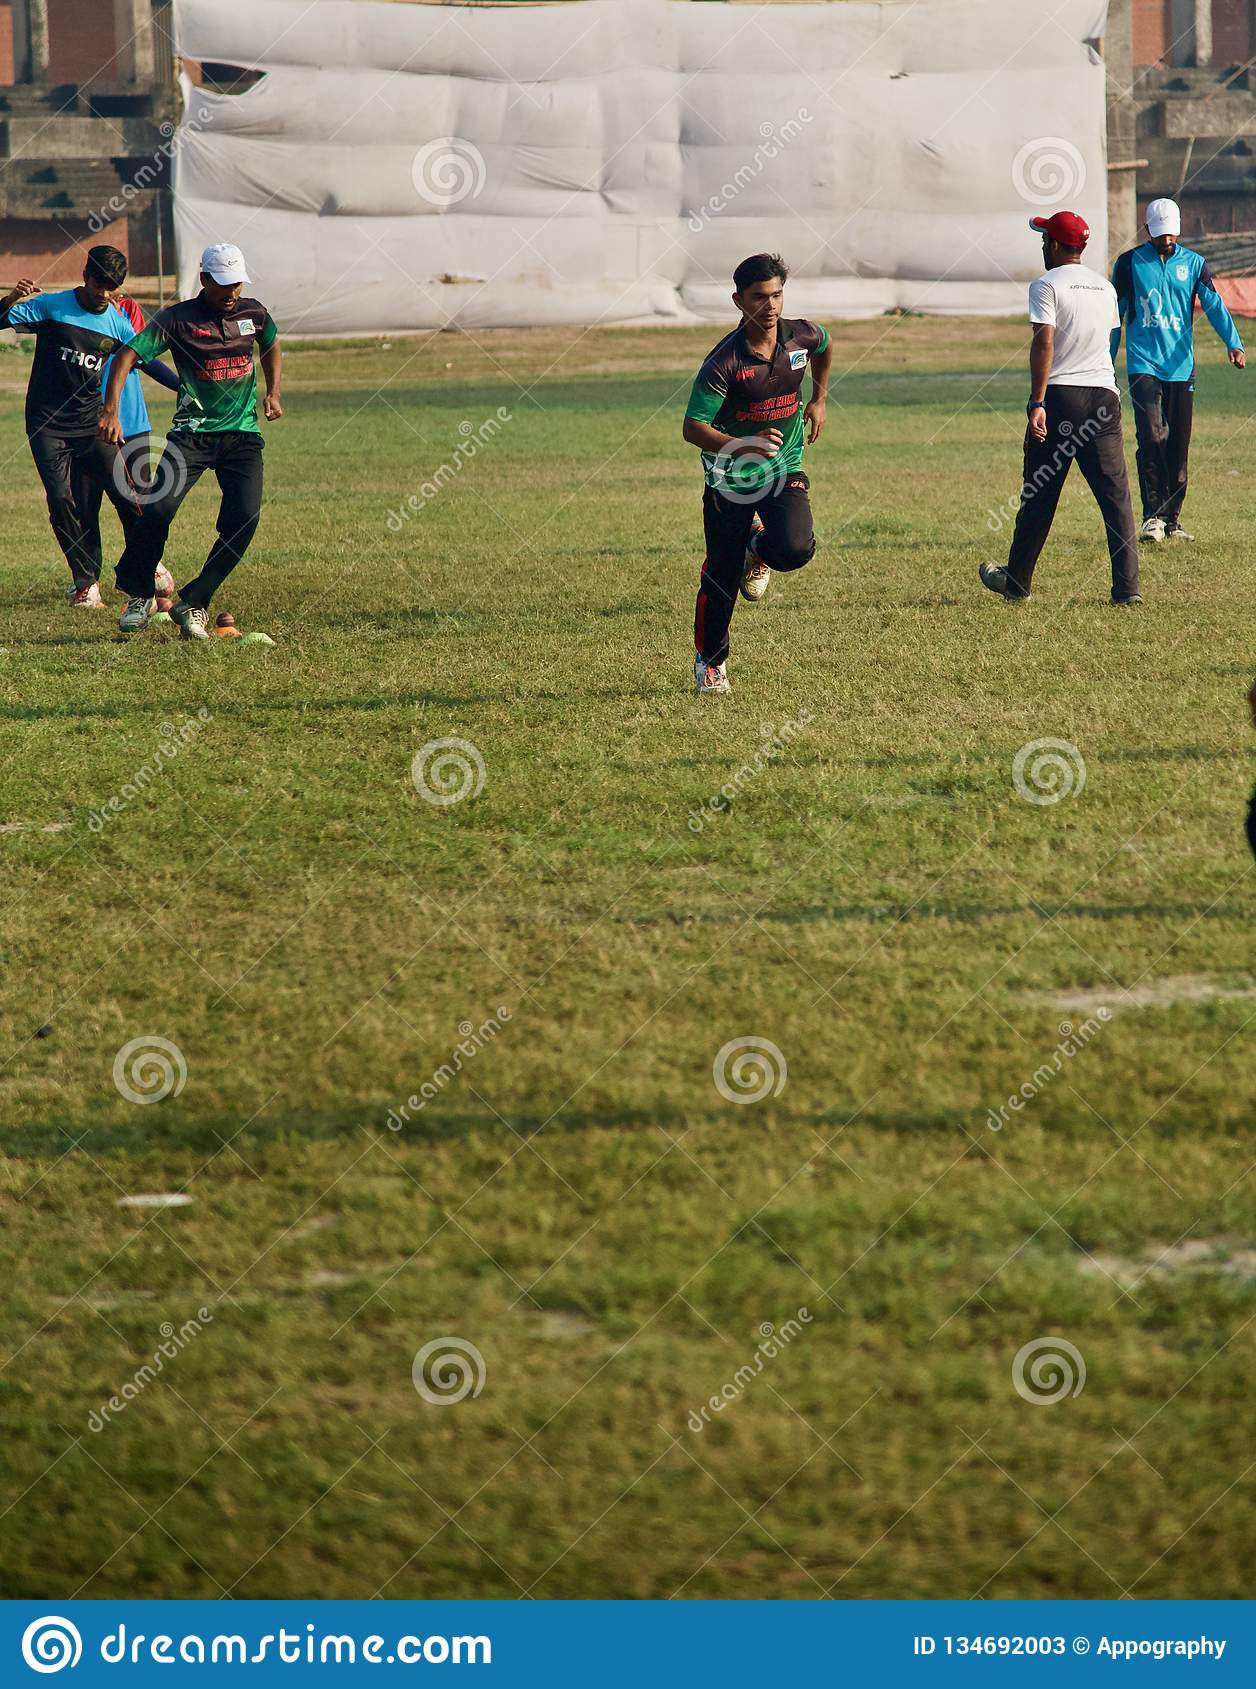 Young boys running in a field